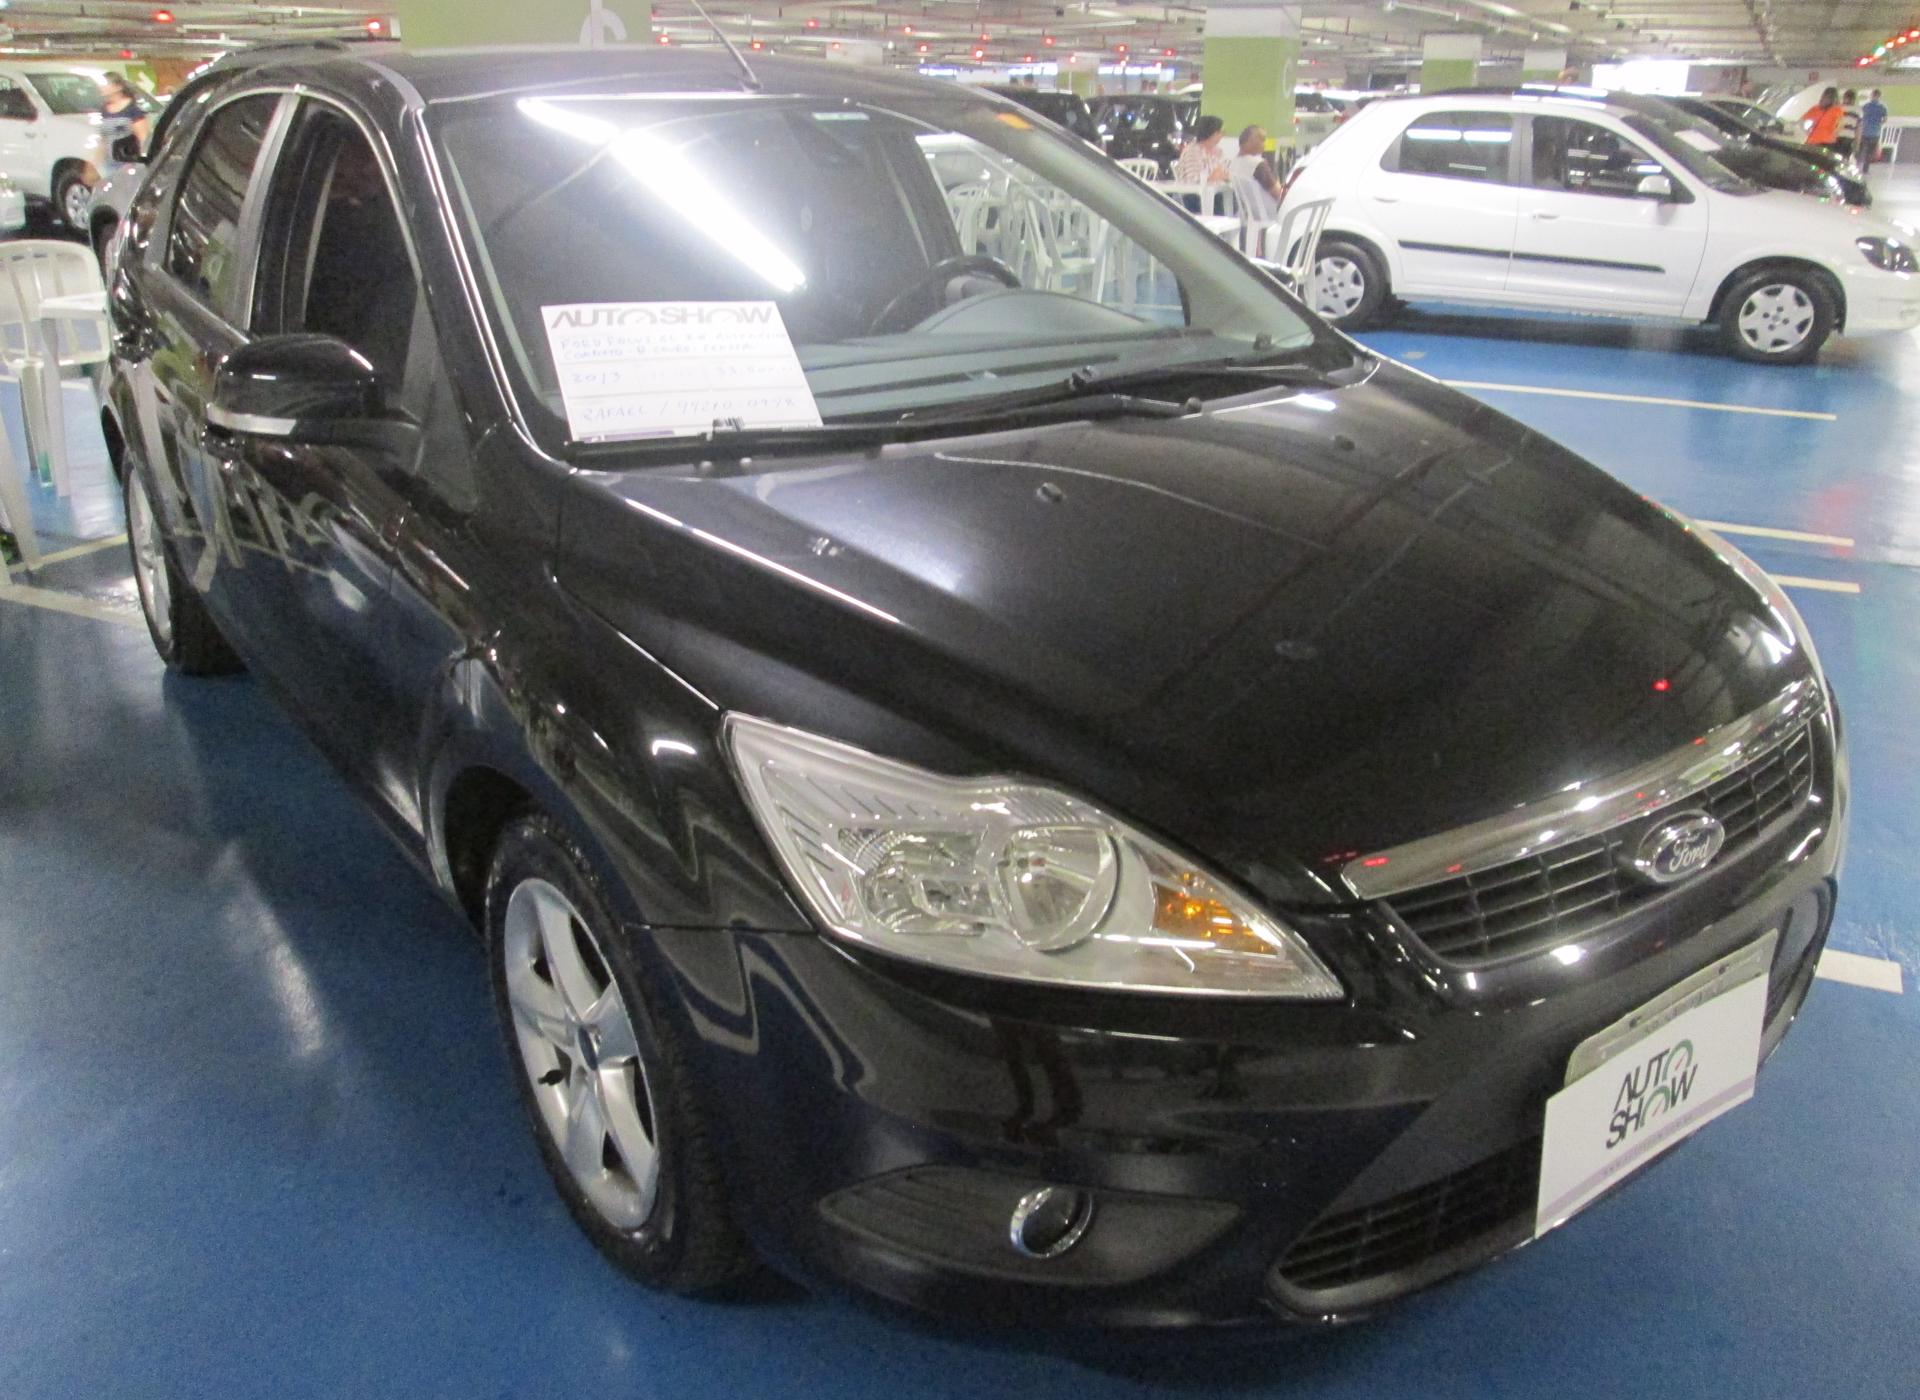 Feirão Auto Show Shopping ABC - FORD FOCUS 2.0 16V/ 2.0 16V FLEX 5P 2013-2013